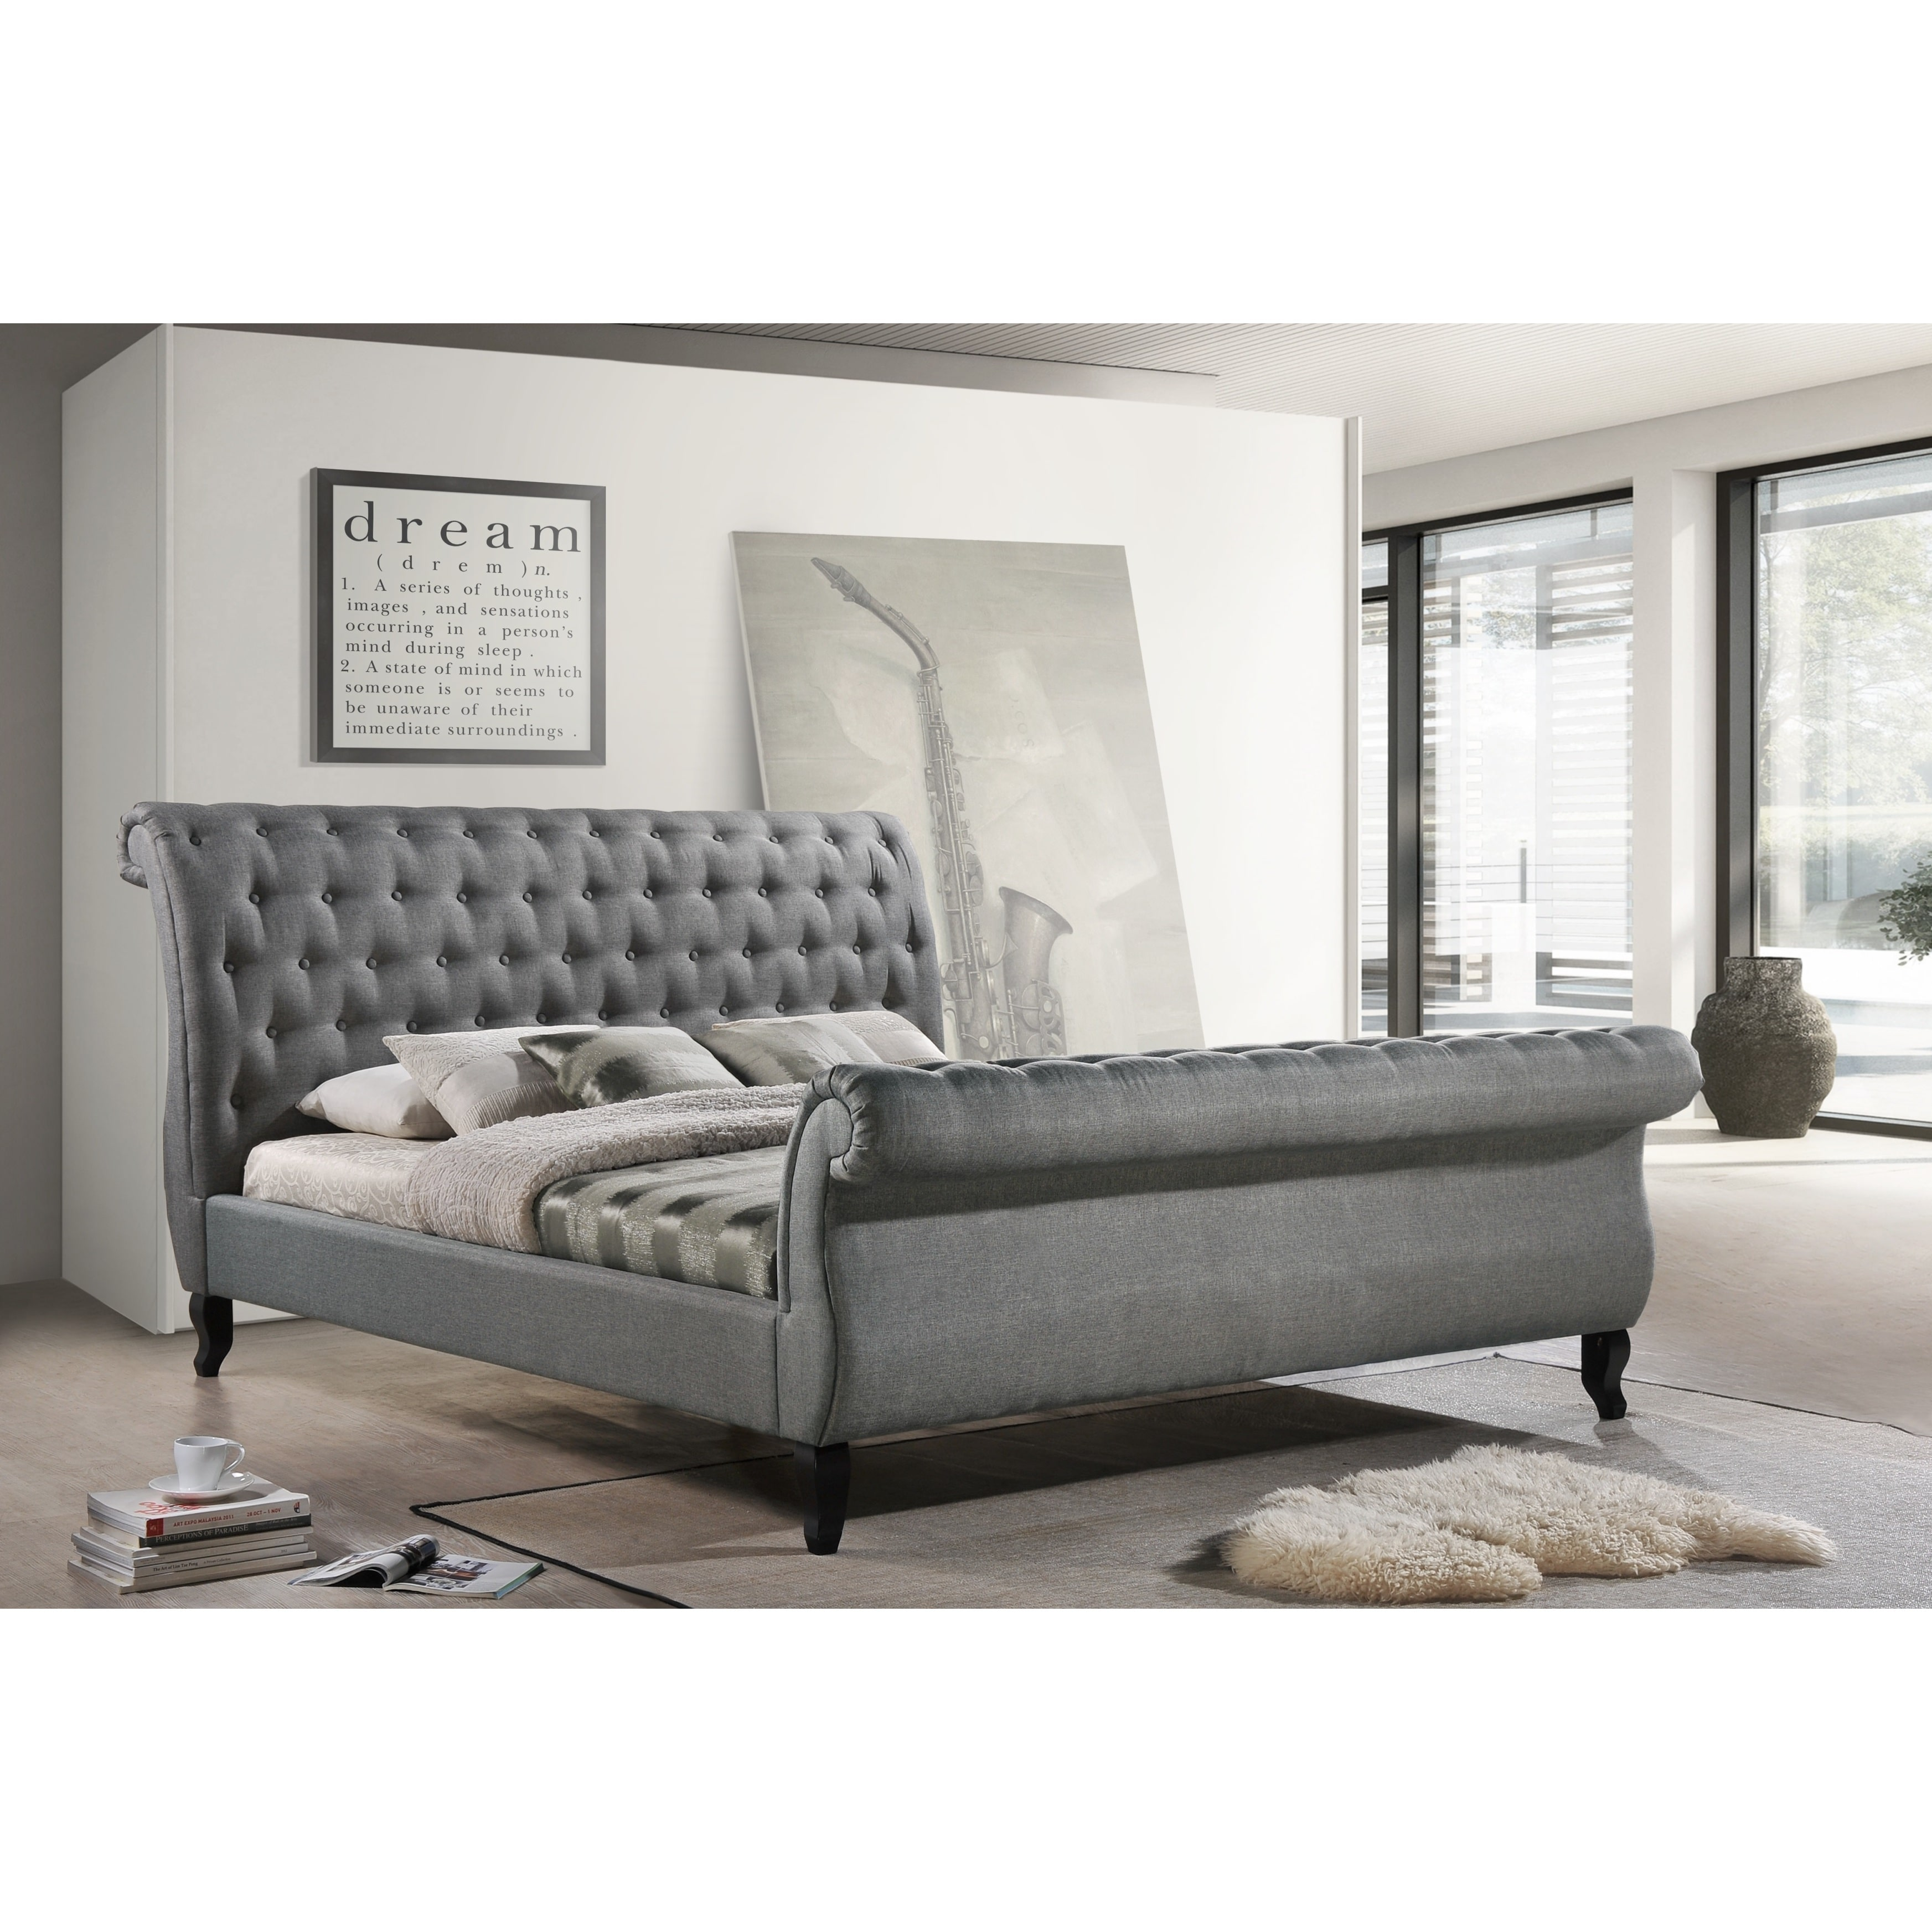 Nottingham King-Size Tufted Sleigh Upholstered Platform Sleigh Bed in Gray Fabric